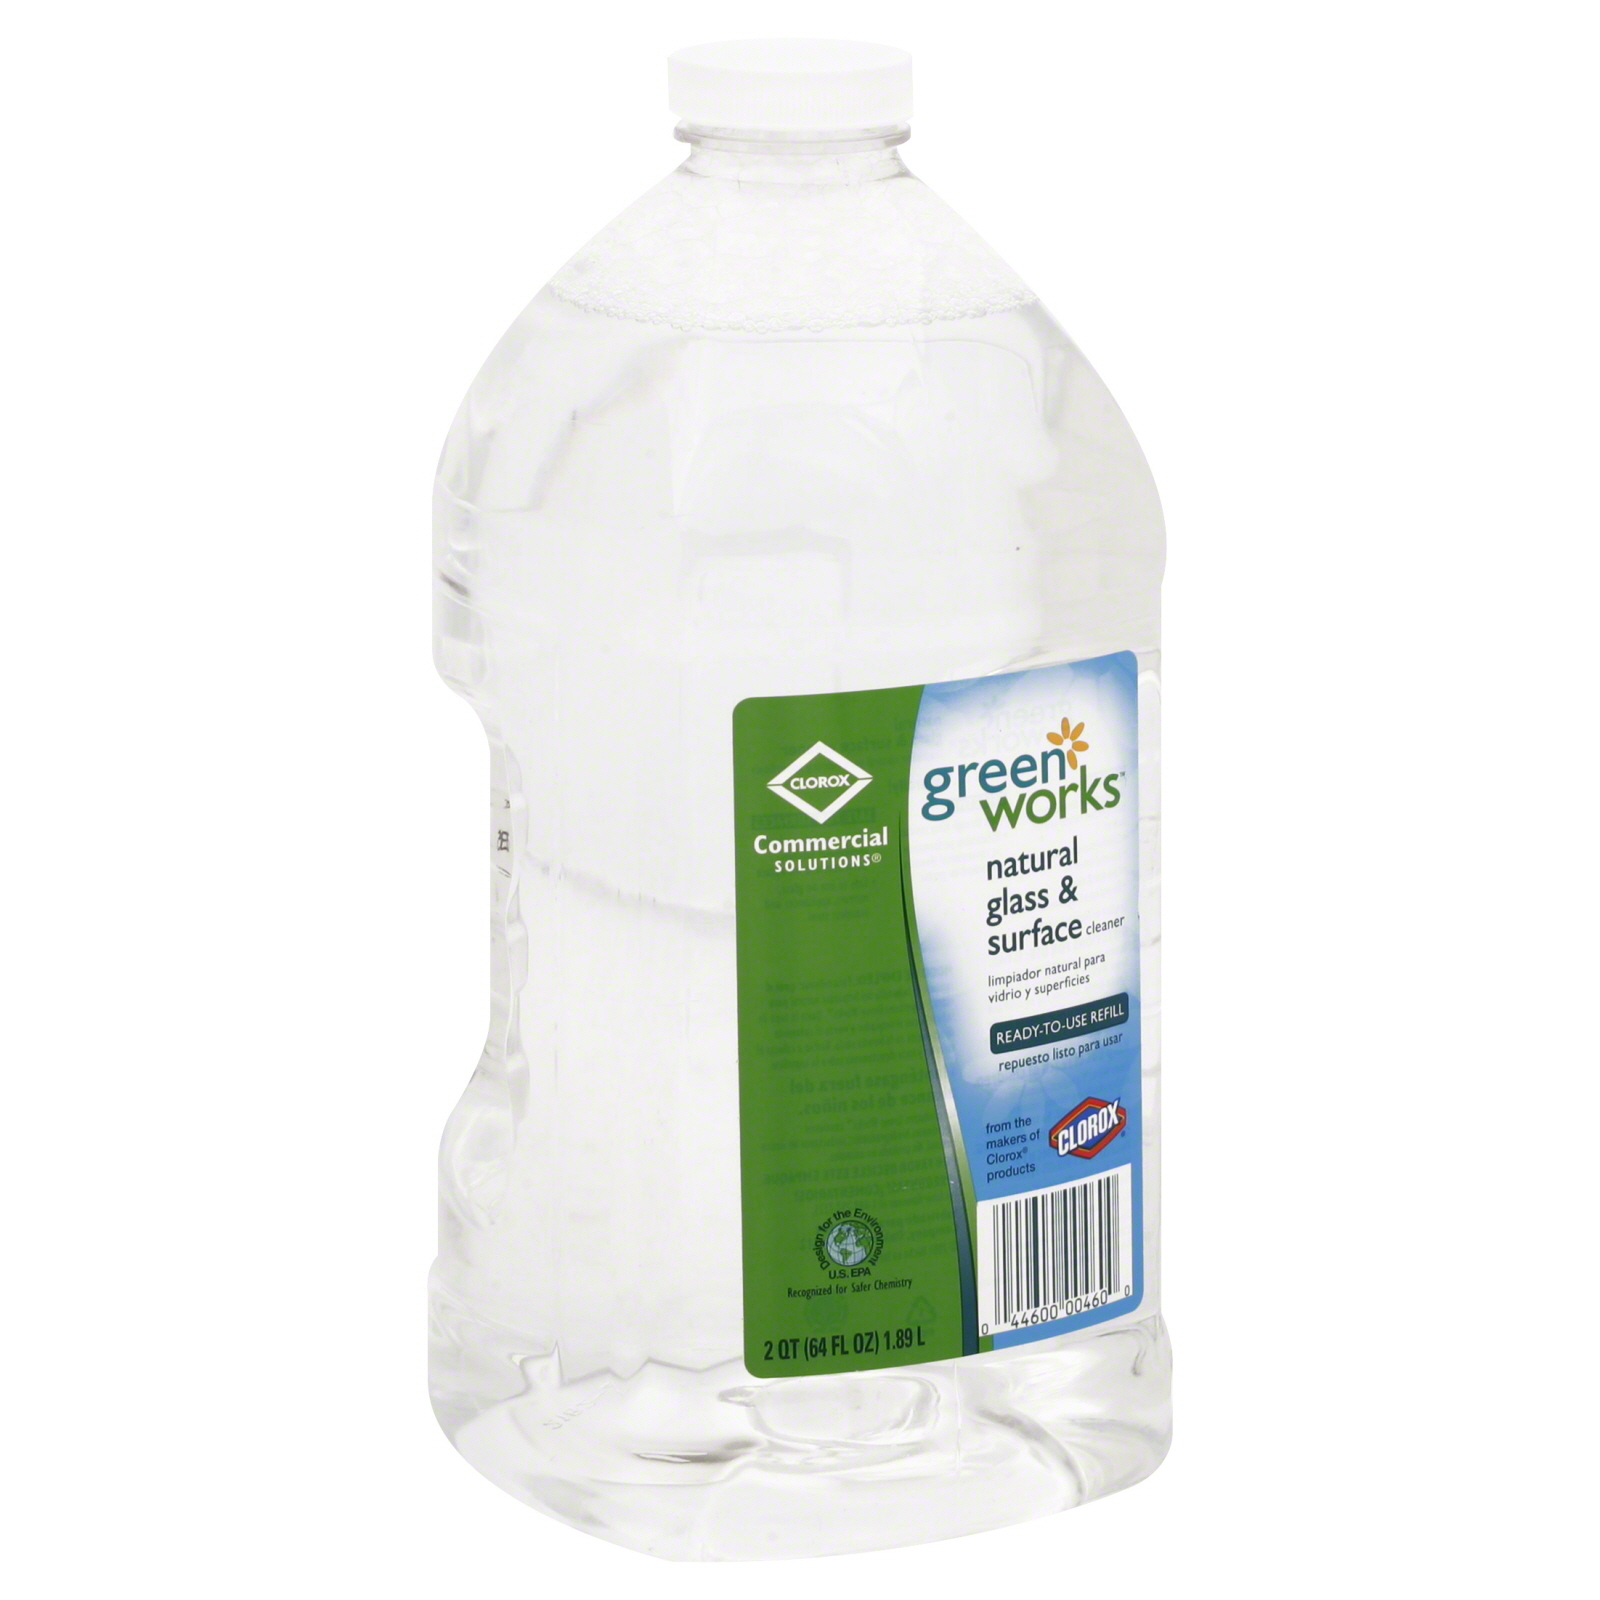 Commercial Solutions Glass & Surface Cleaner,